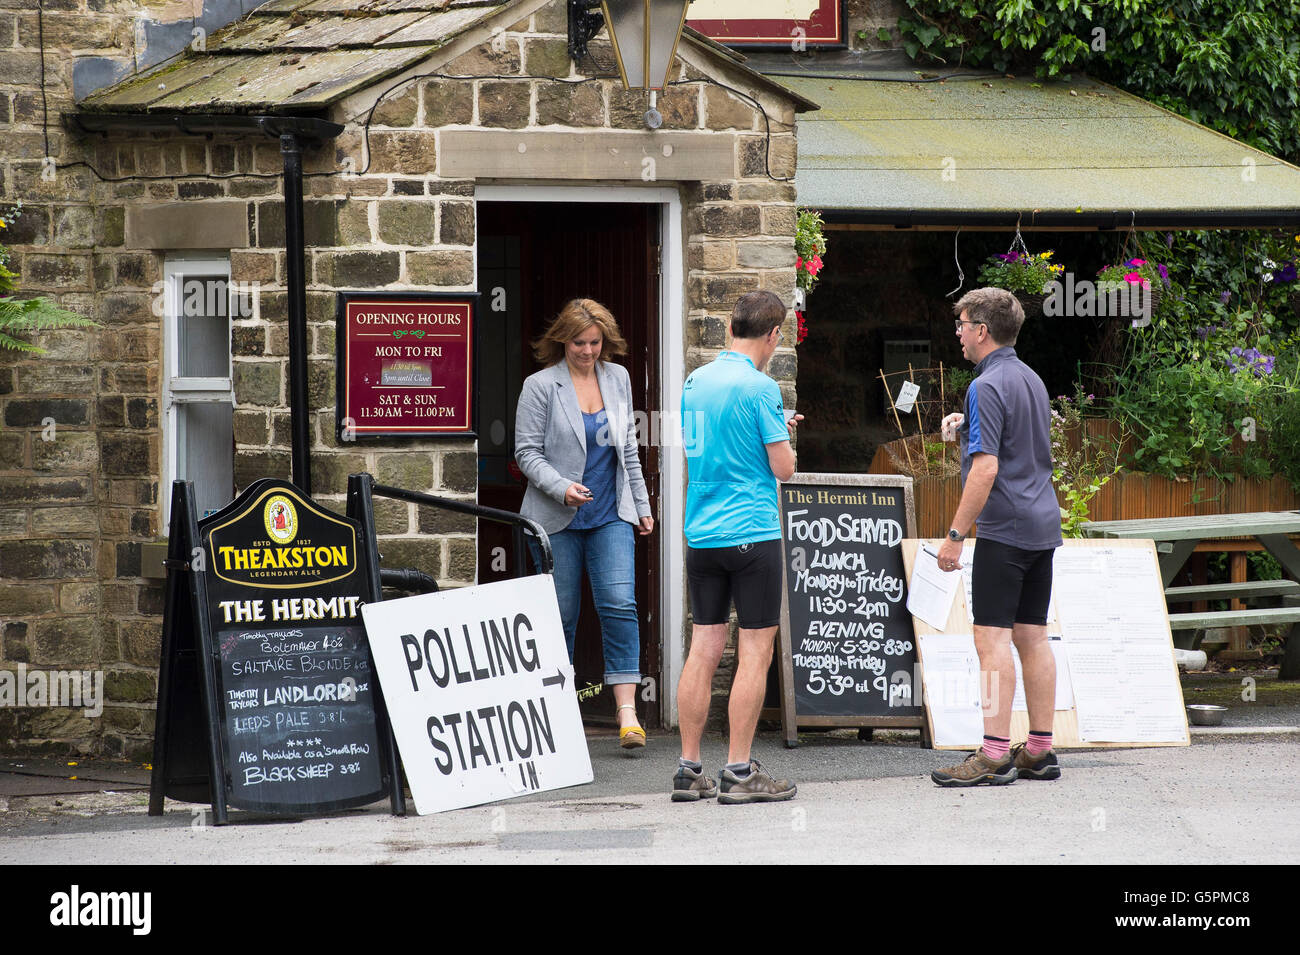 The Hermit, a village pub in Burley Woodhead, West Yorkshire, Britain. 23rd June, 2016. About to cast their vote, - Stock Image